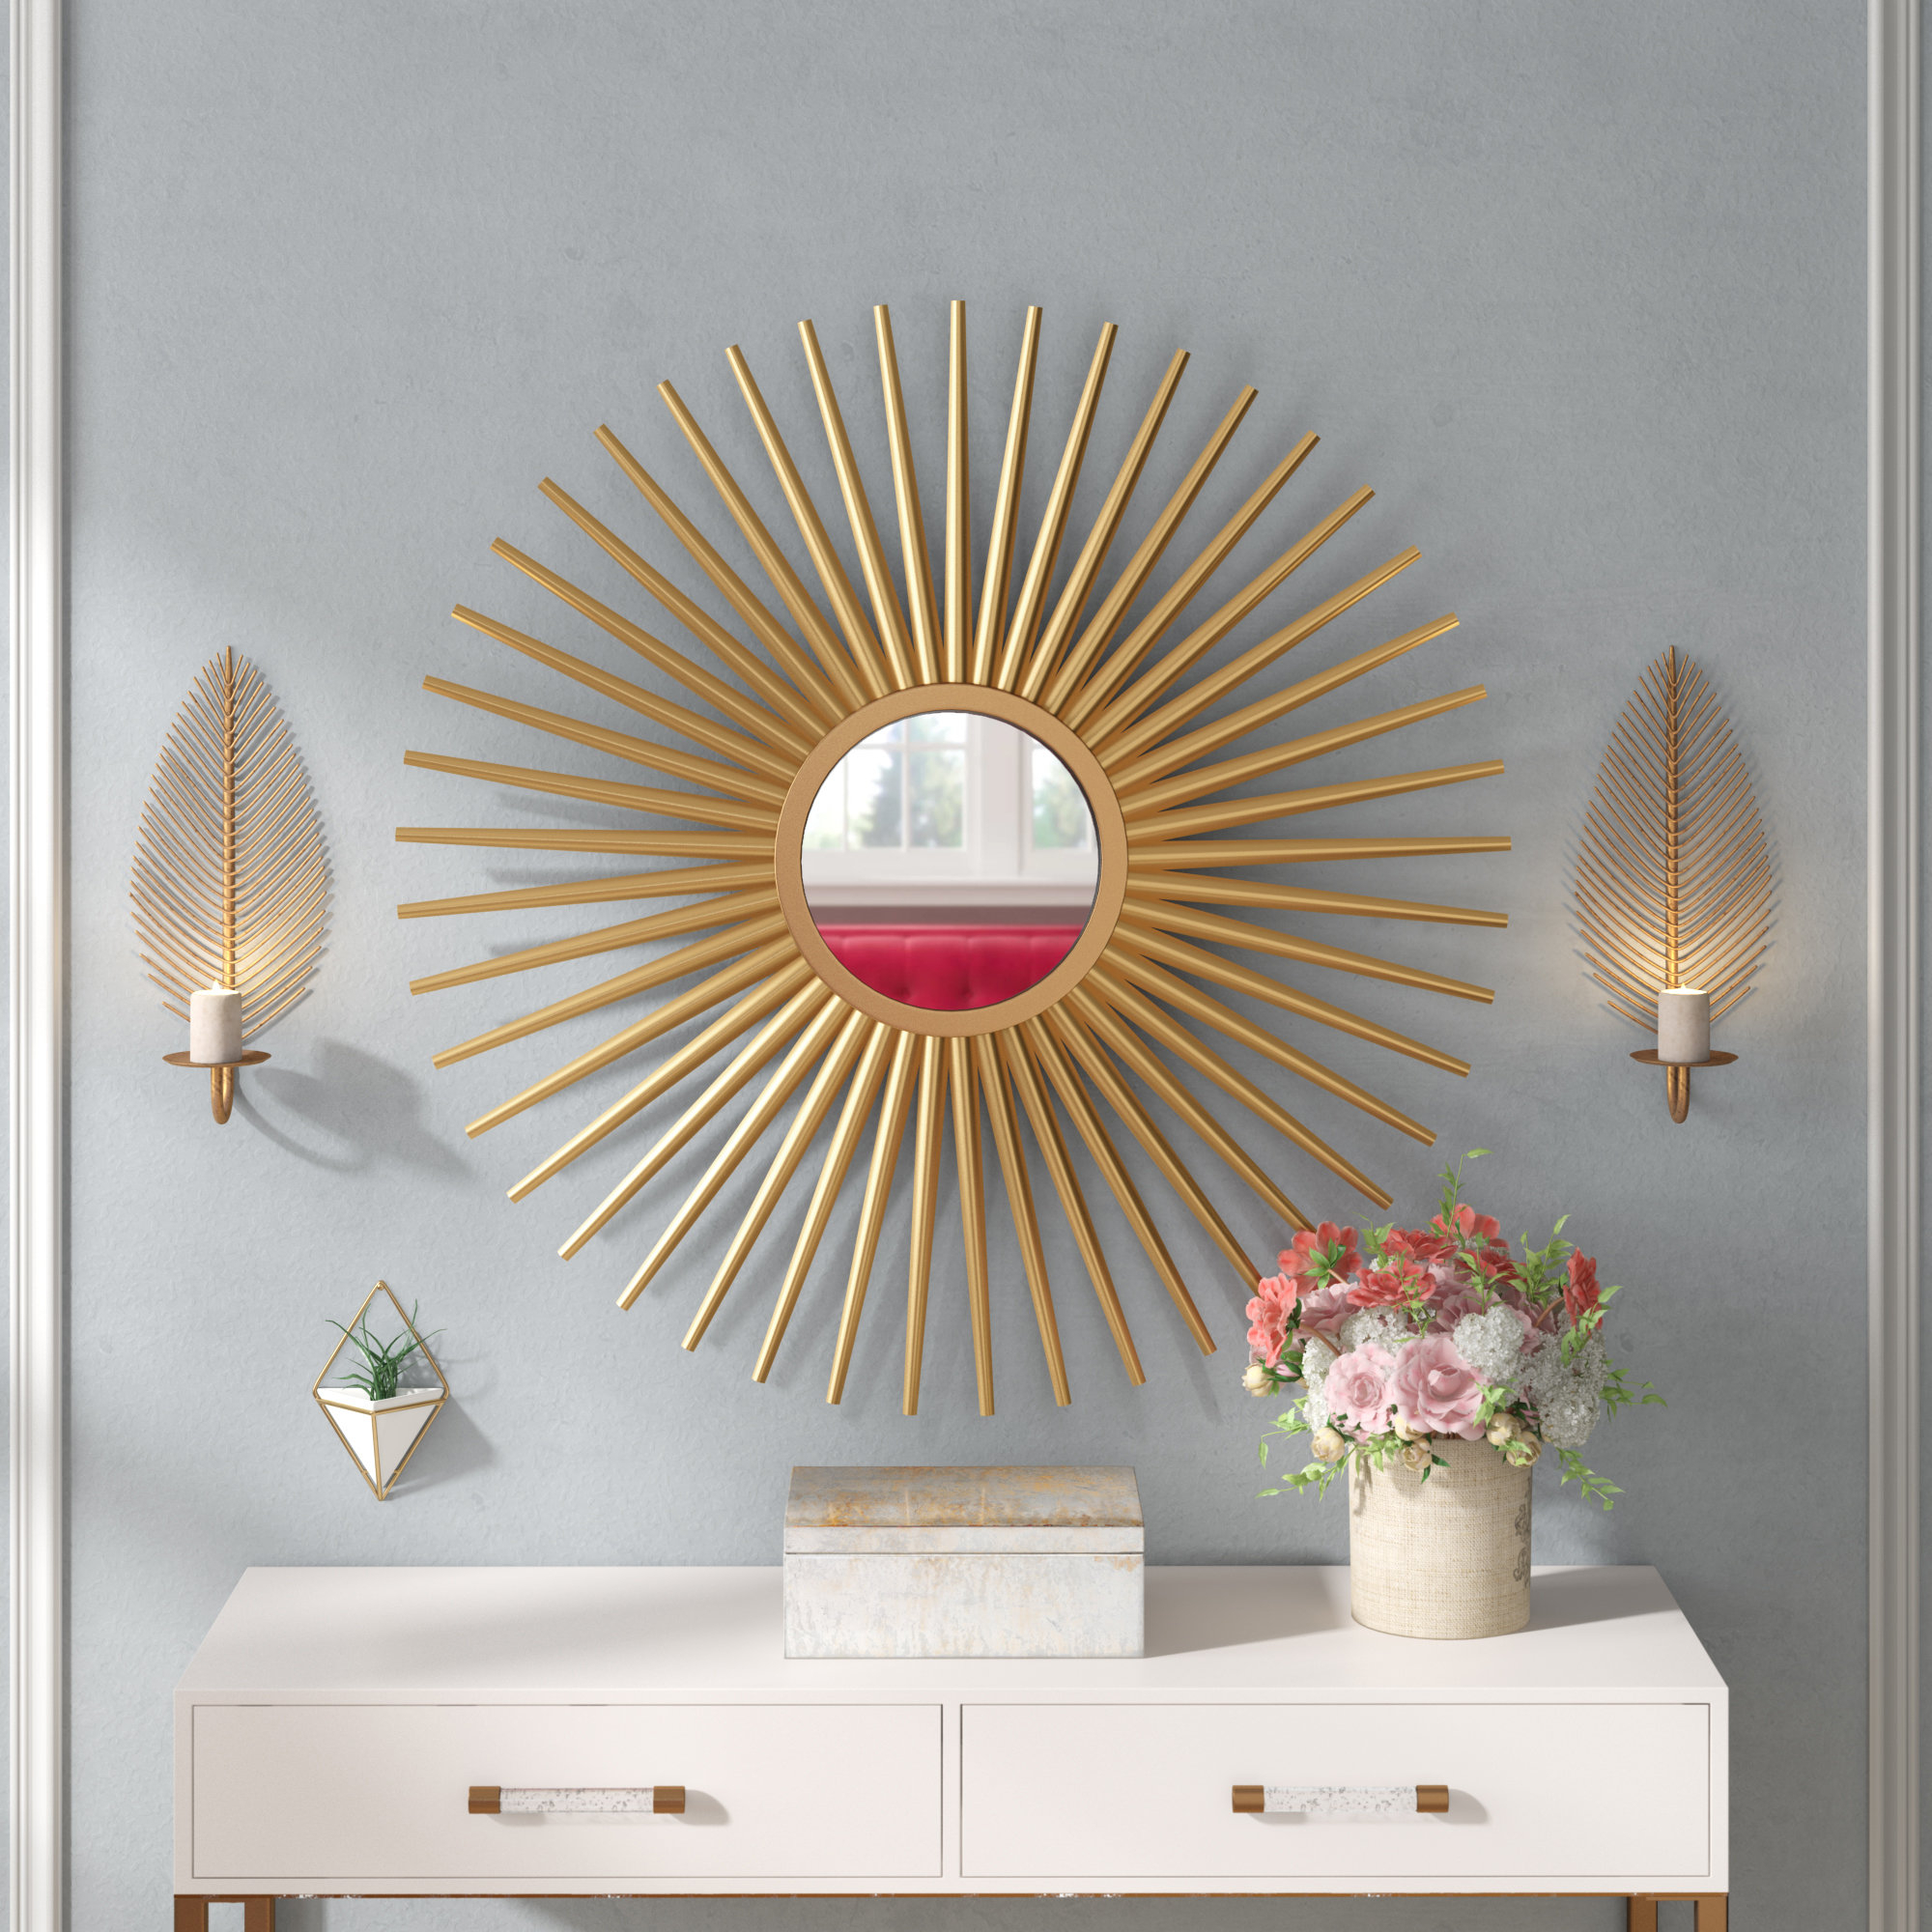 Starburst Wall Decor By Willa Arlo Interiors In Most Recent Willa Arlo Interiors Sunburst Wall Mirror & Reviews (Gallery 6 of 20)